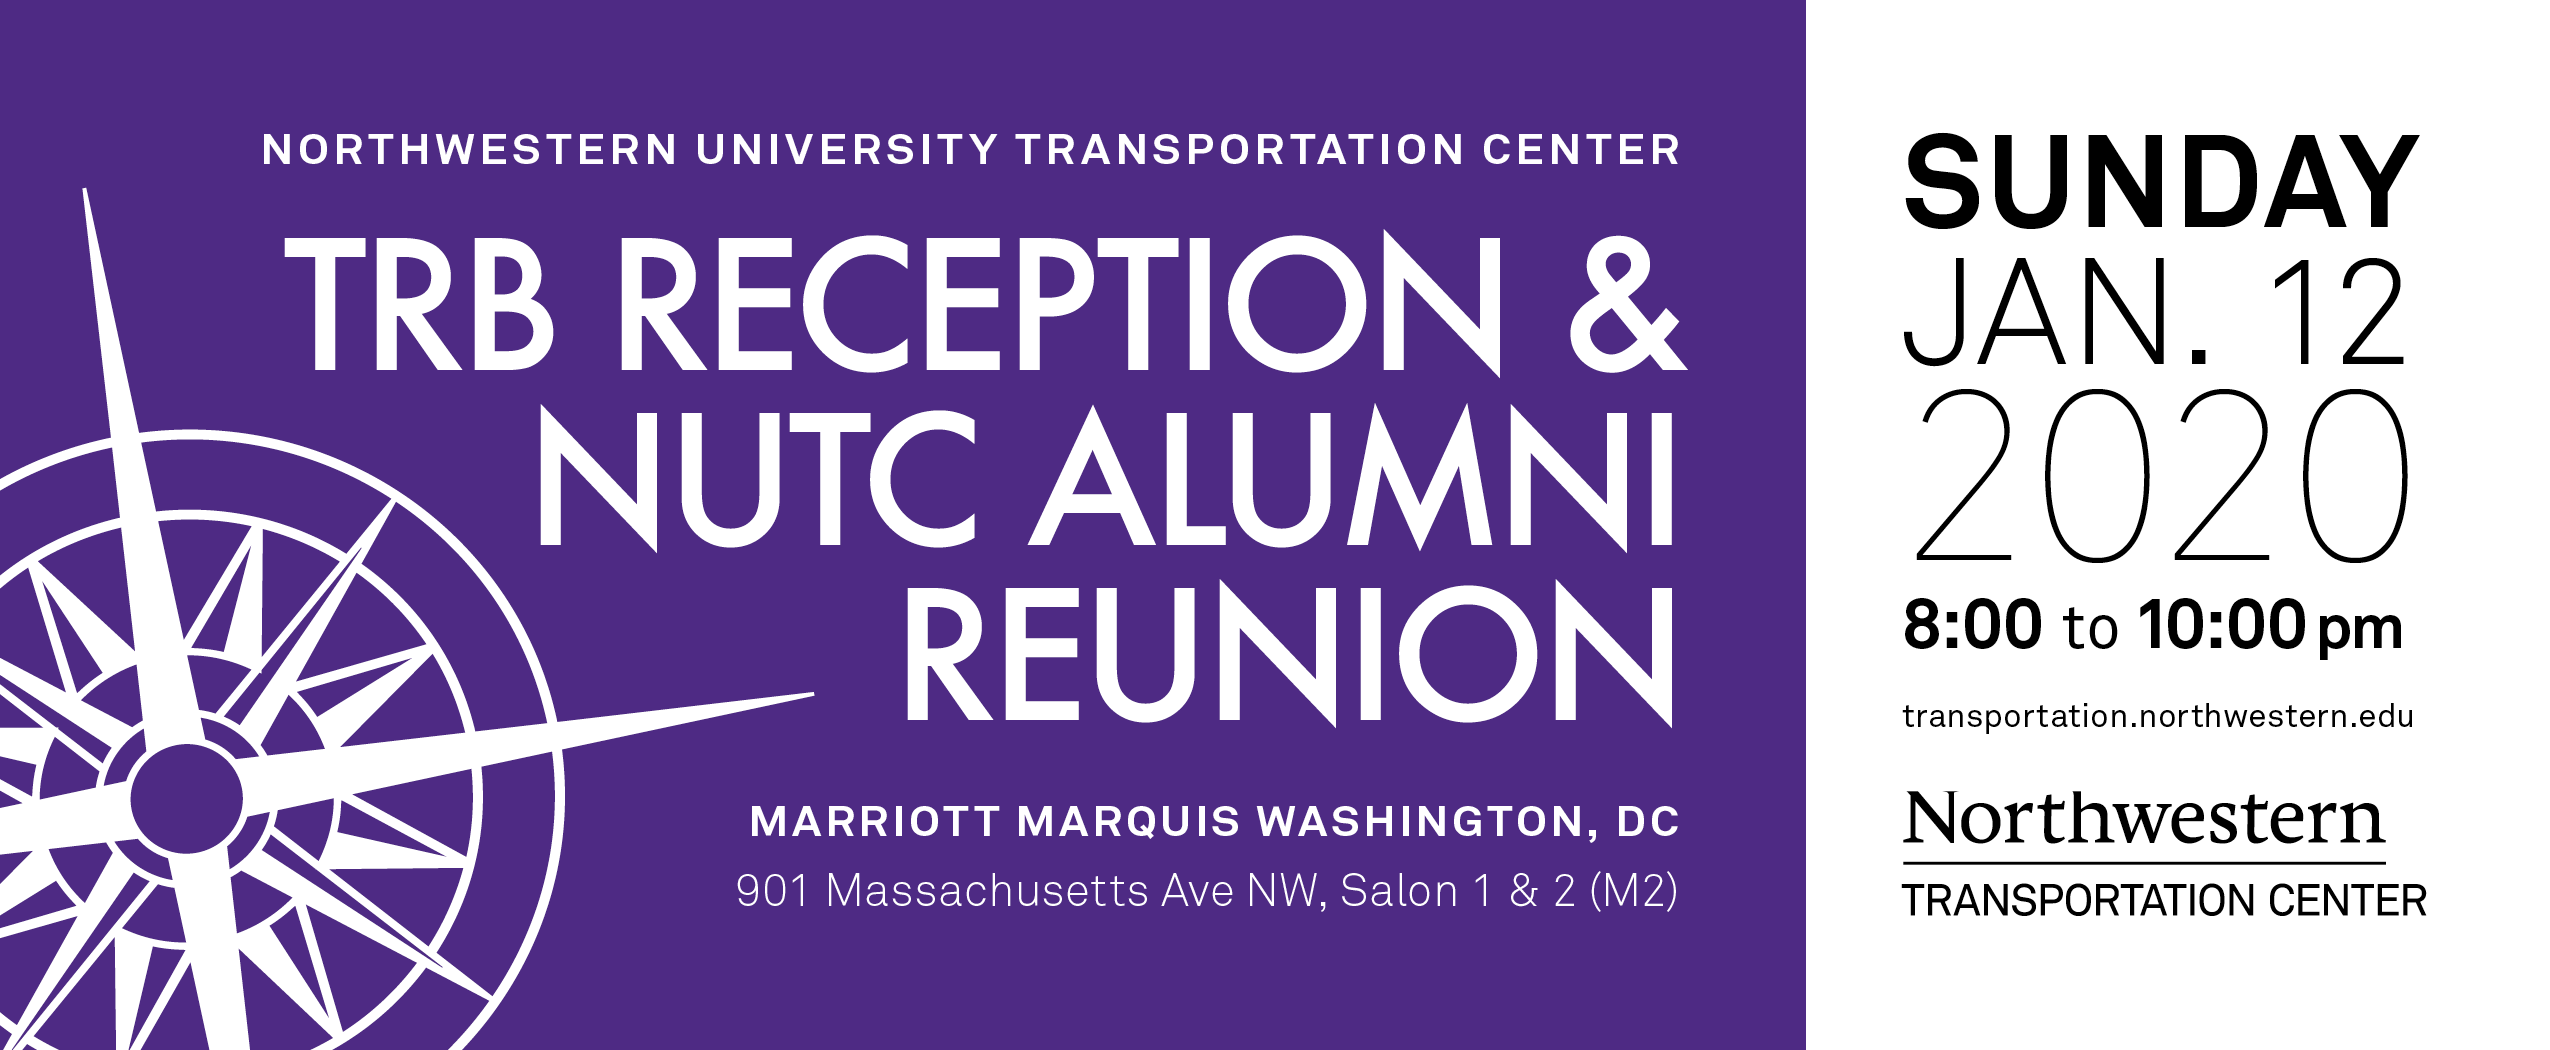 TRB Reception & NUTC Alumni Reunion